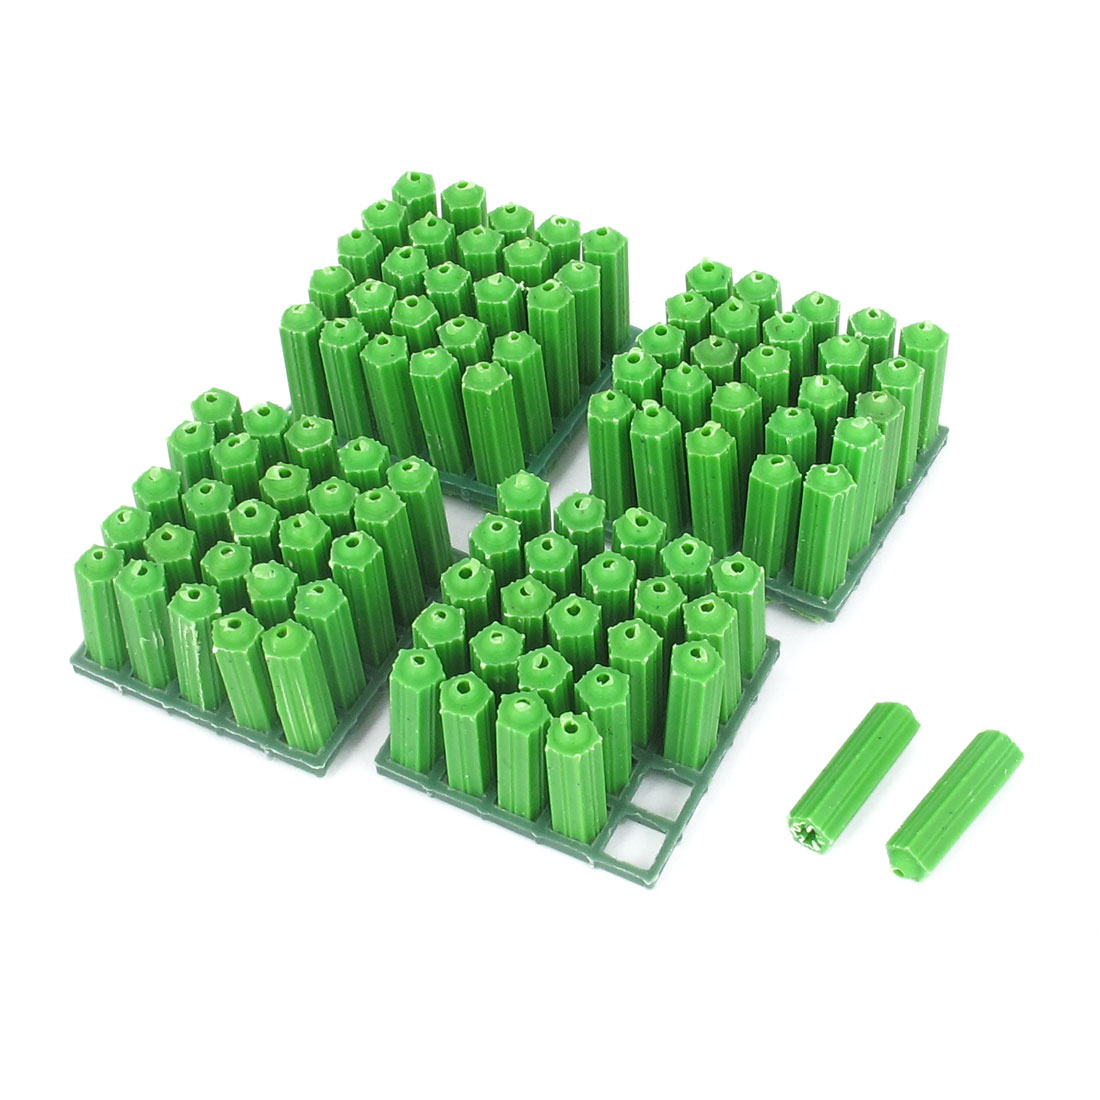 8mmx27mm Masonry Fixing Nonslip Plastic Wall Connector Green 100pcs